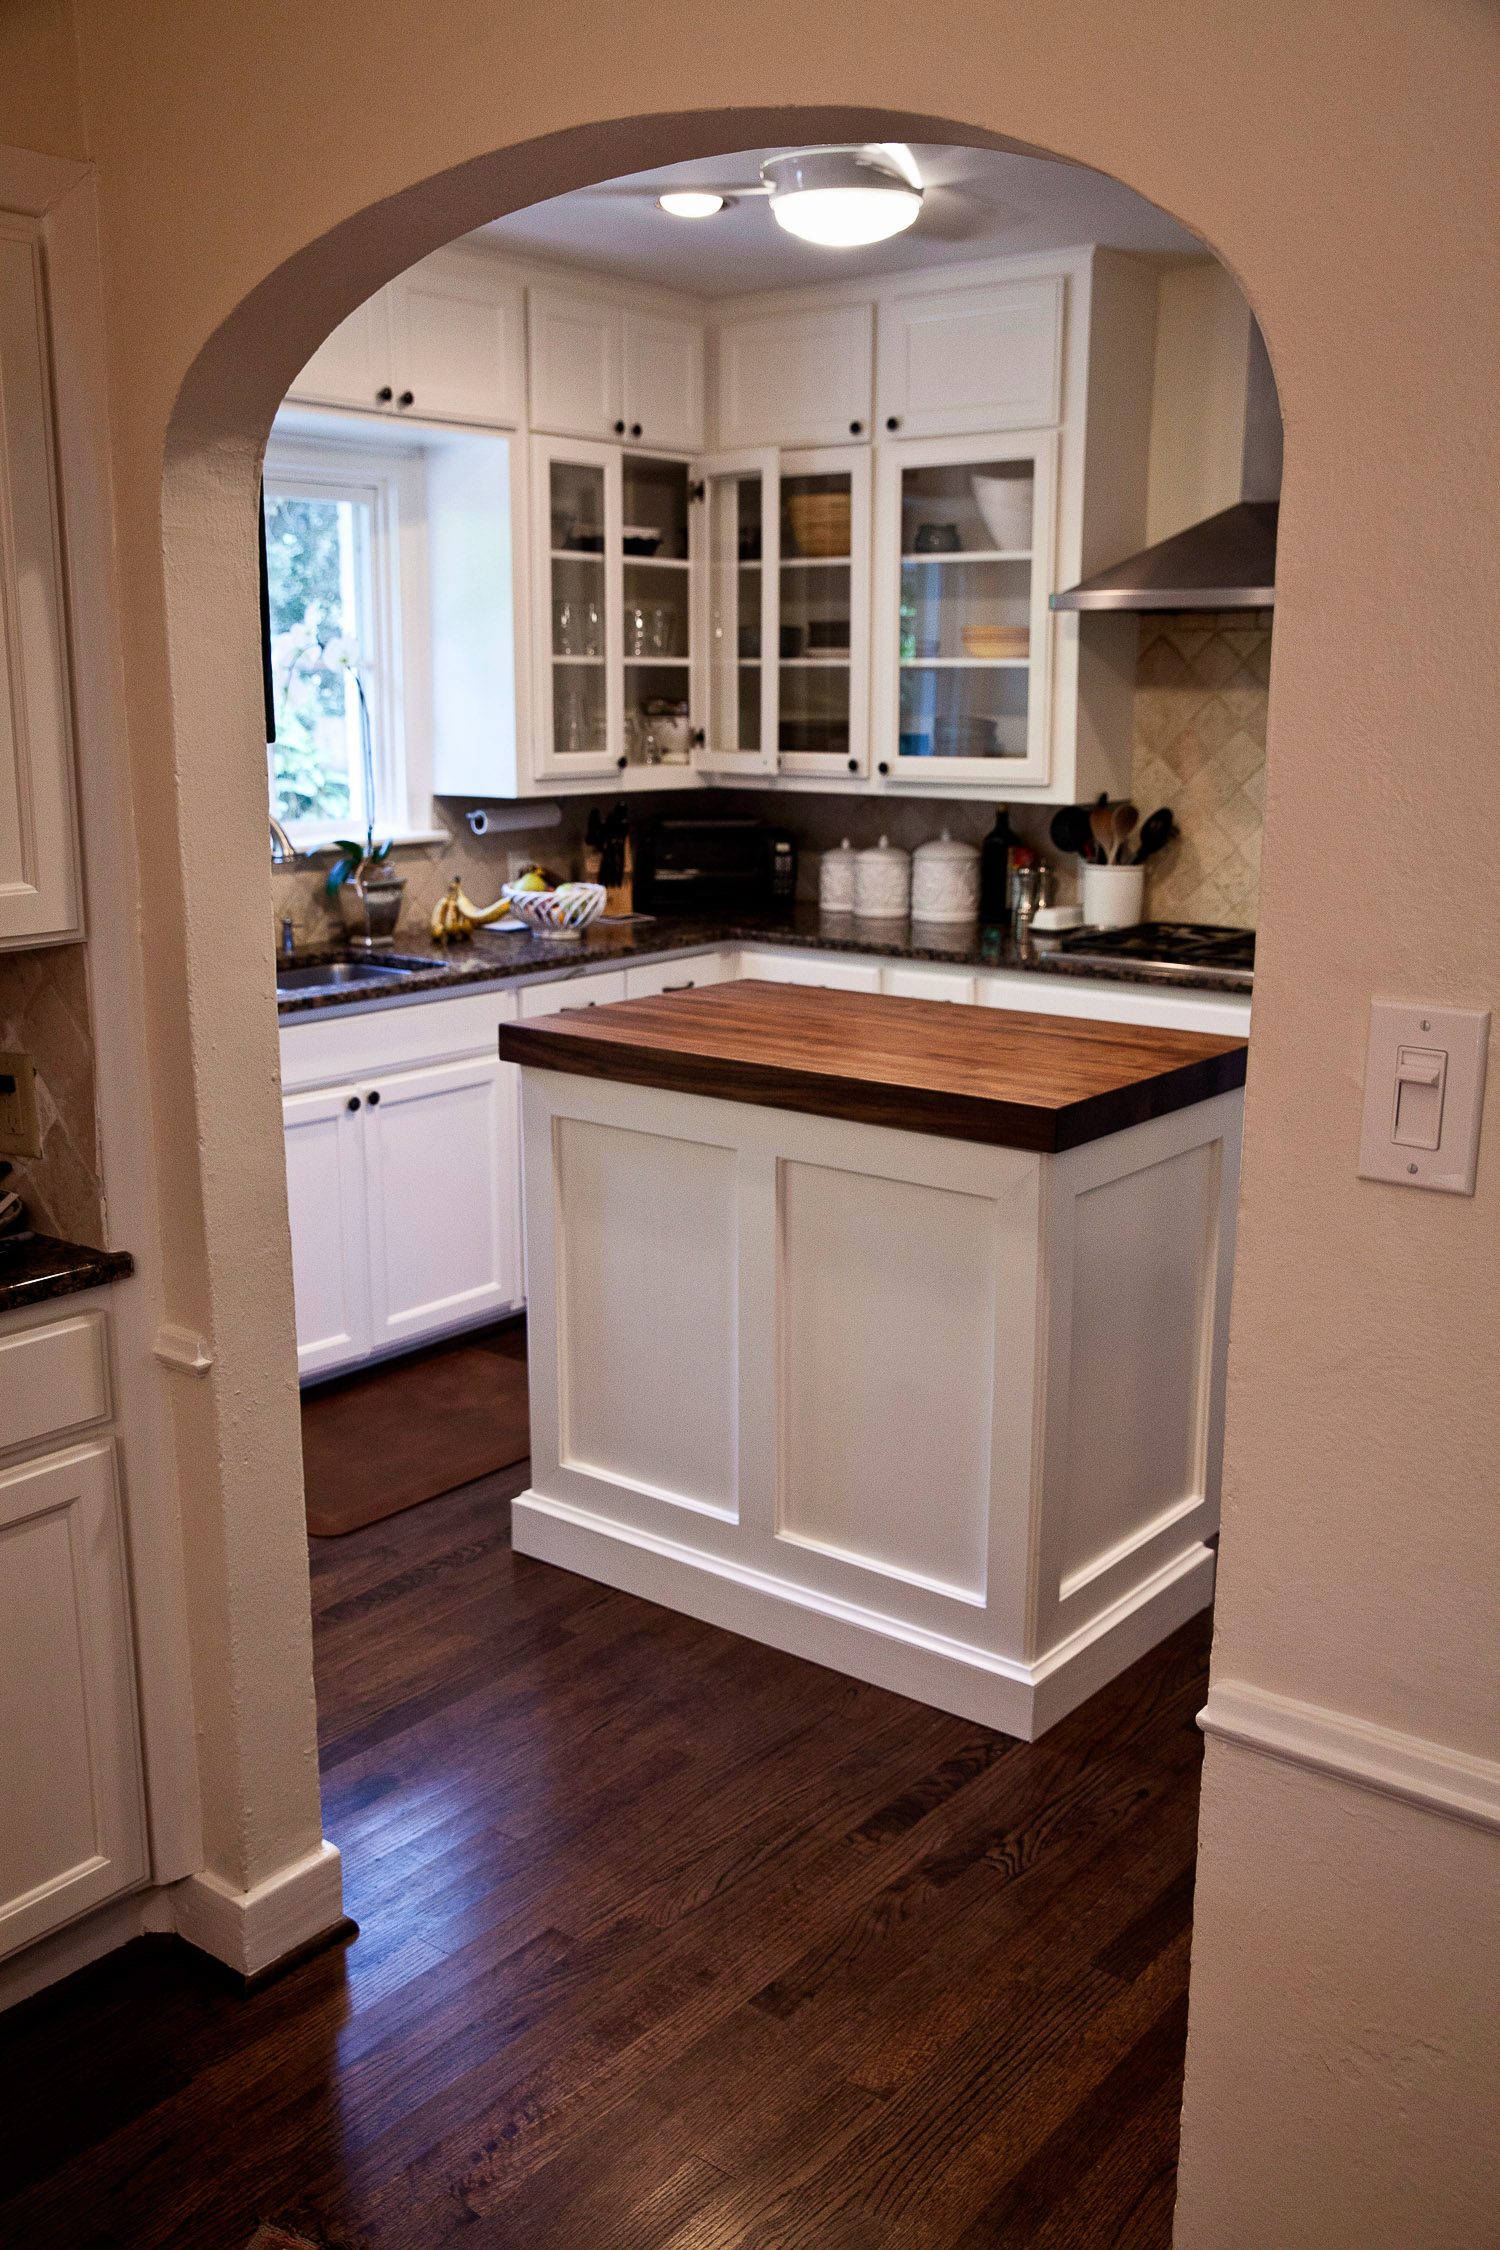 walnut kitchen island in west u install kitchen island Walnut Kitchen Butcher Block Island Install West University in Houston Texas